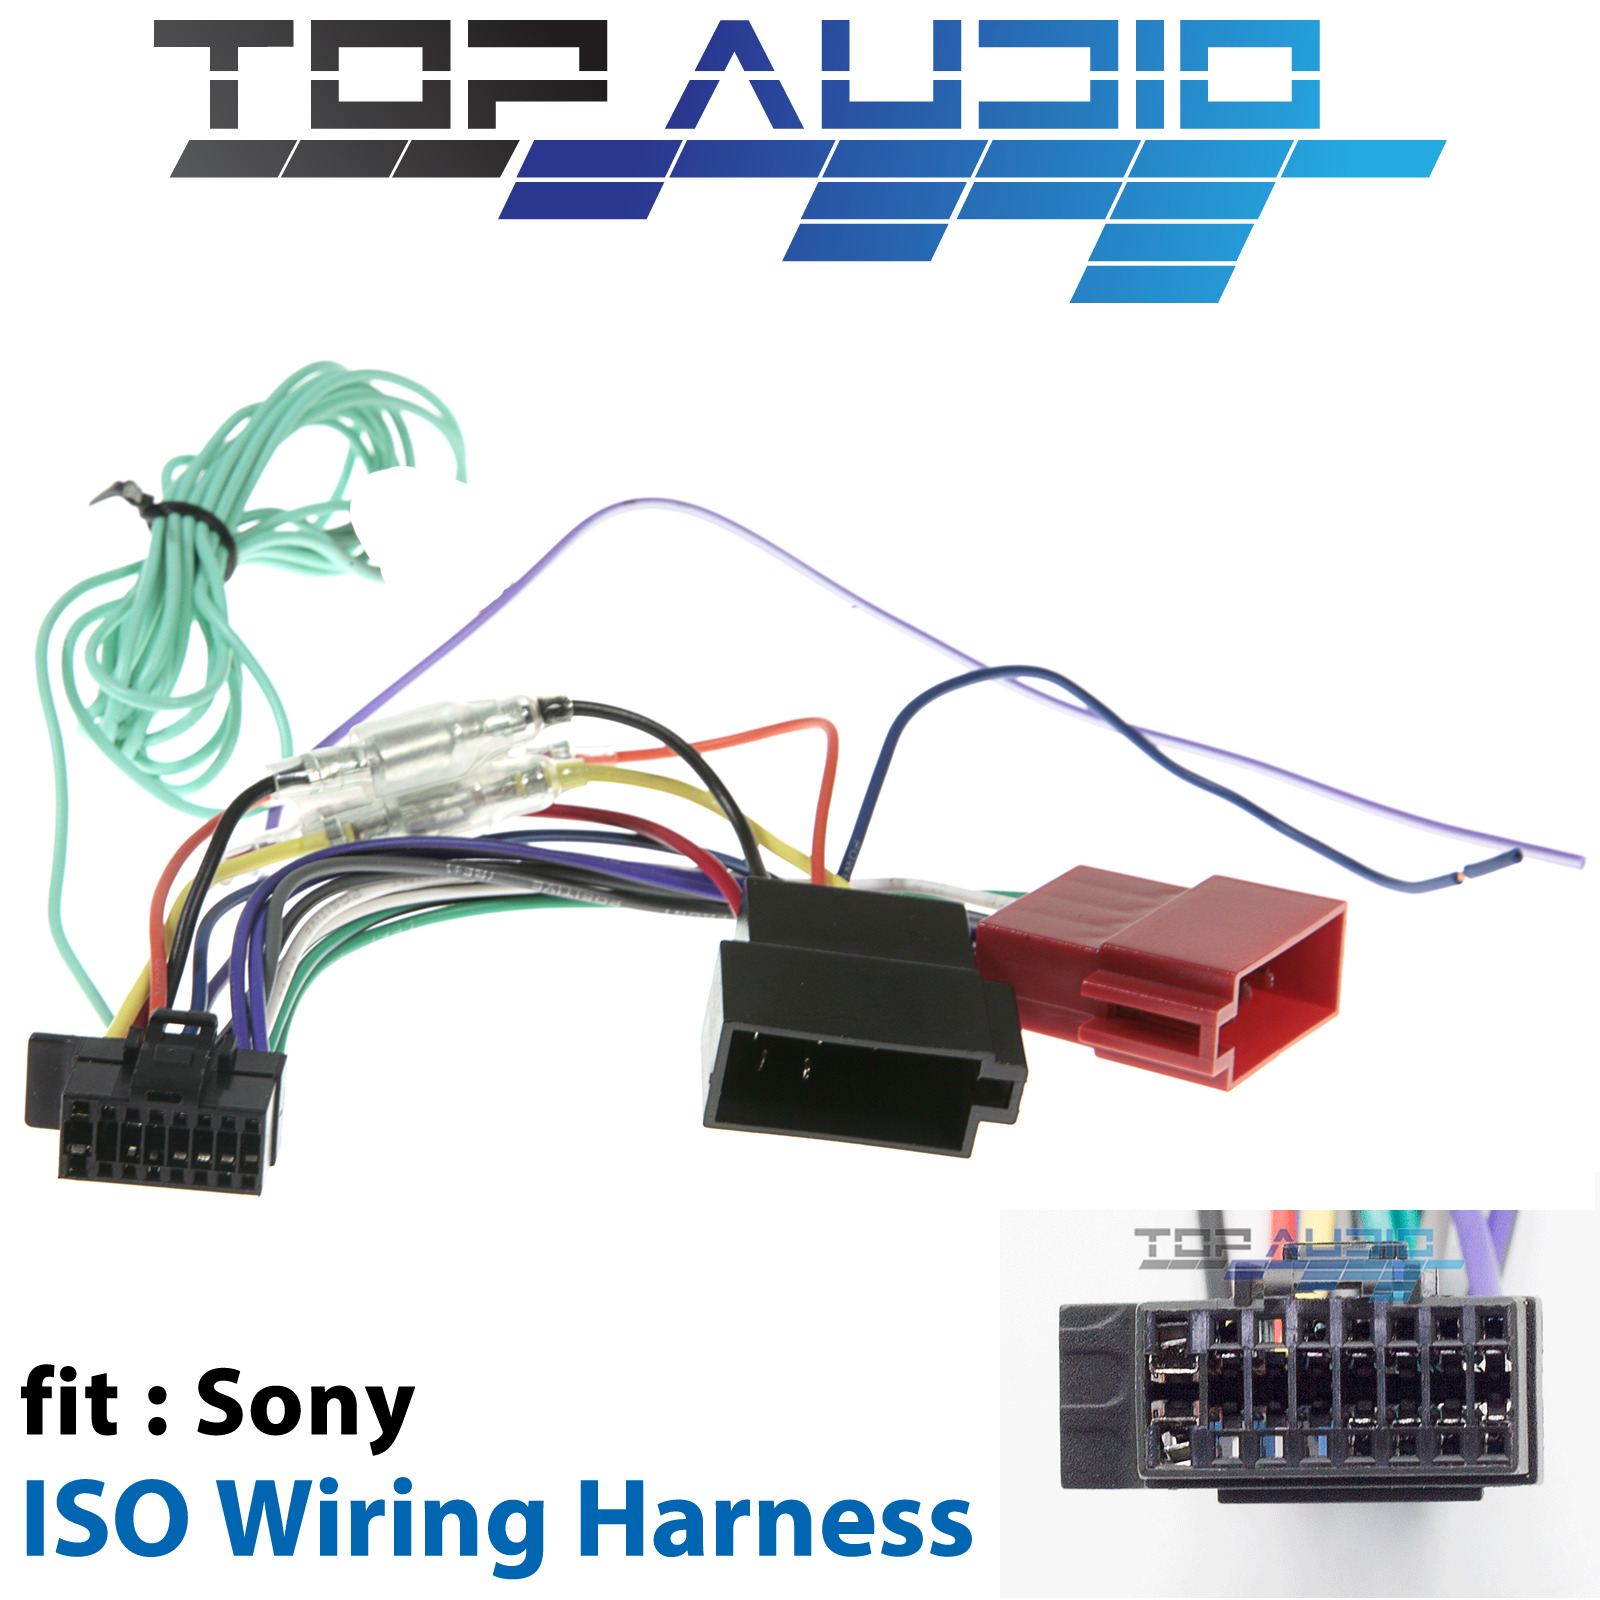 Sony Xav 68bt Iso Wiring Harness Cable Adaptor Connector Lead Loom Car Stereo Radio Adapter Wire Plug For Sale